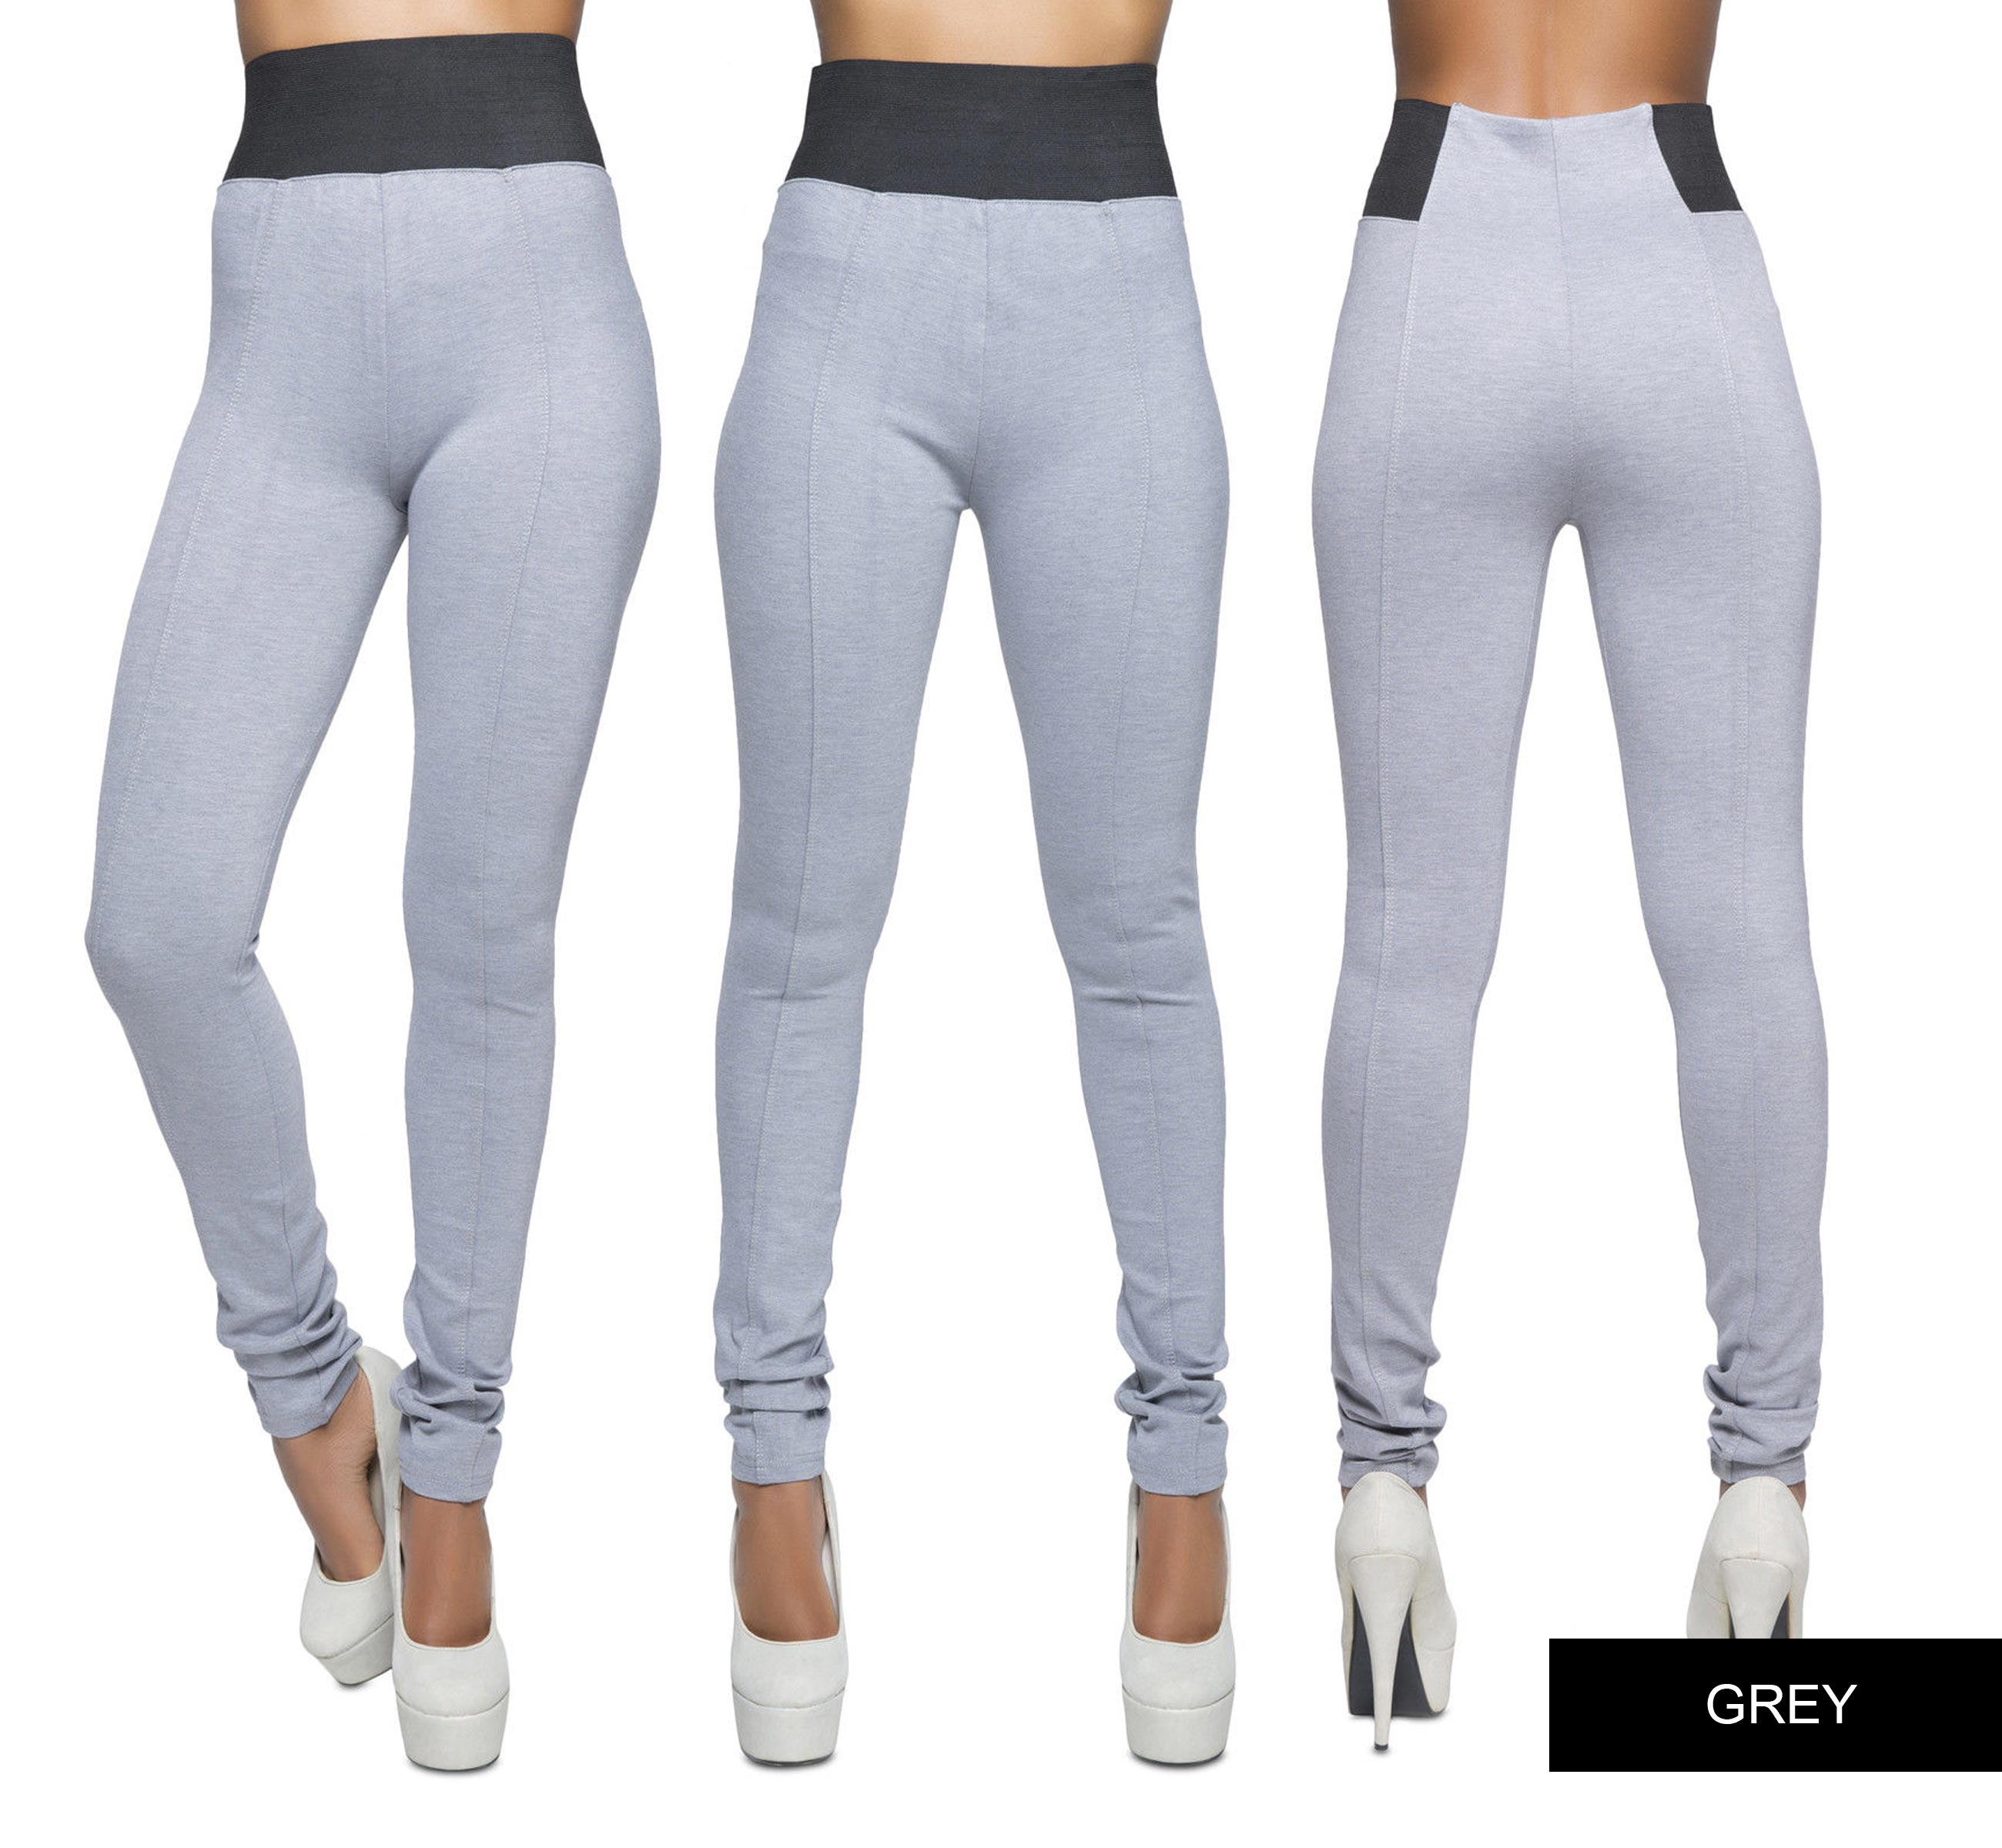 Womens Jean Leggings Women's jean leggings help you show off your style in comfort. Slip on a pair of jeggings with an oversized sweater or a soft One Eleven tee to stay on trend.